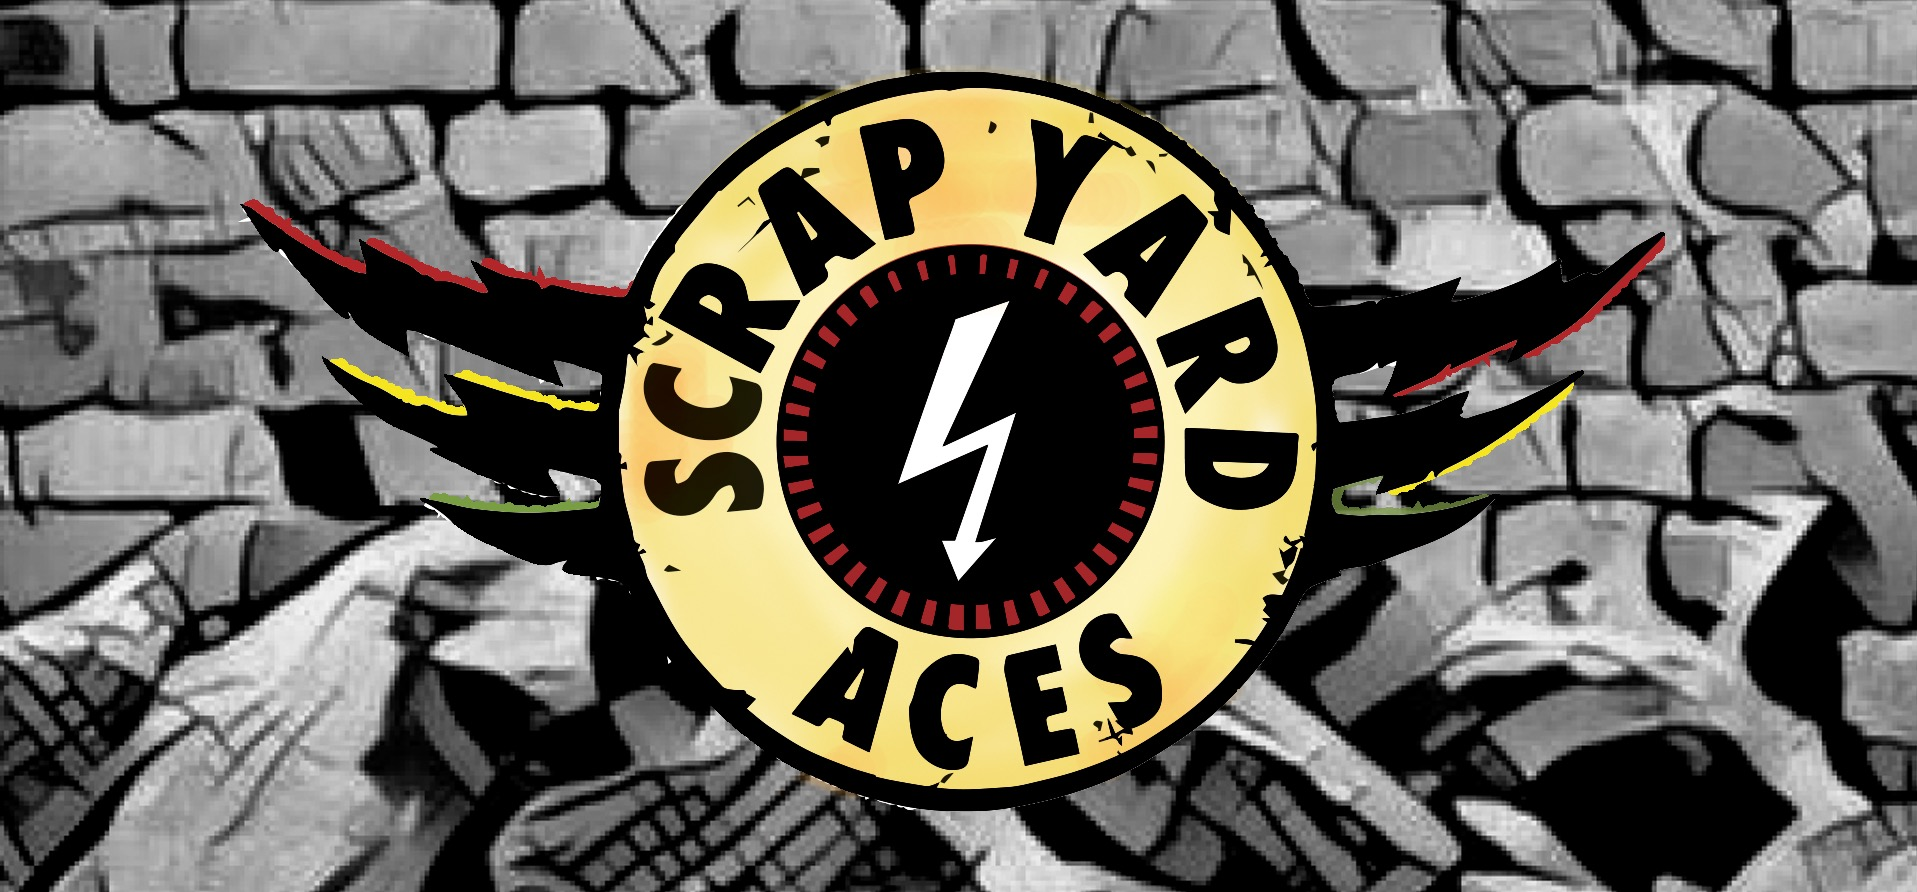 scrap yard aces - the band